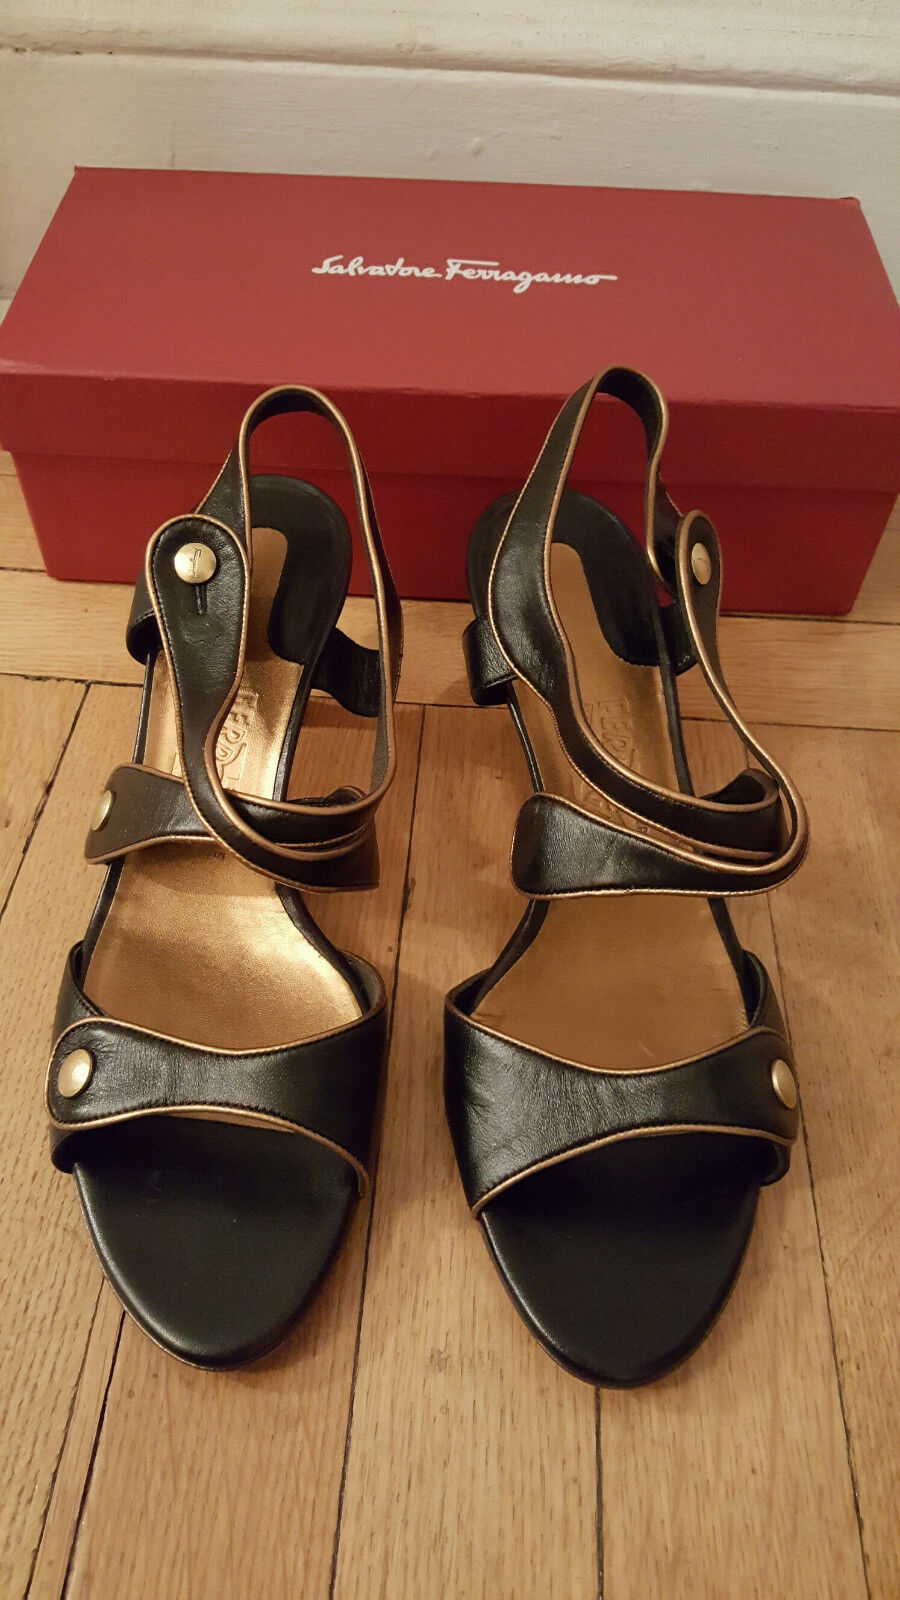 NIB: FERRAGAMO SORPRESA Black Leather Strappy Sandals w/ Gold Piping, 11B